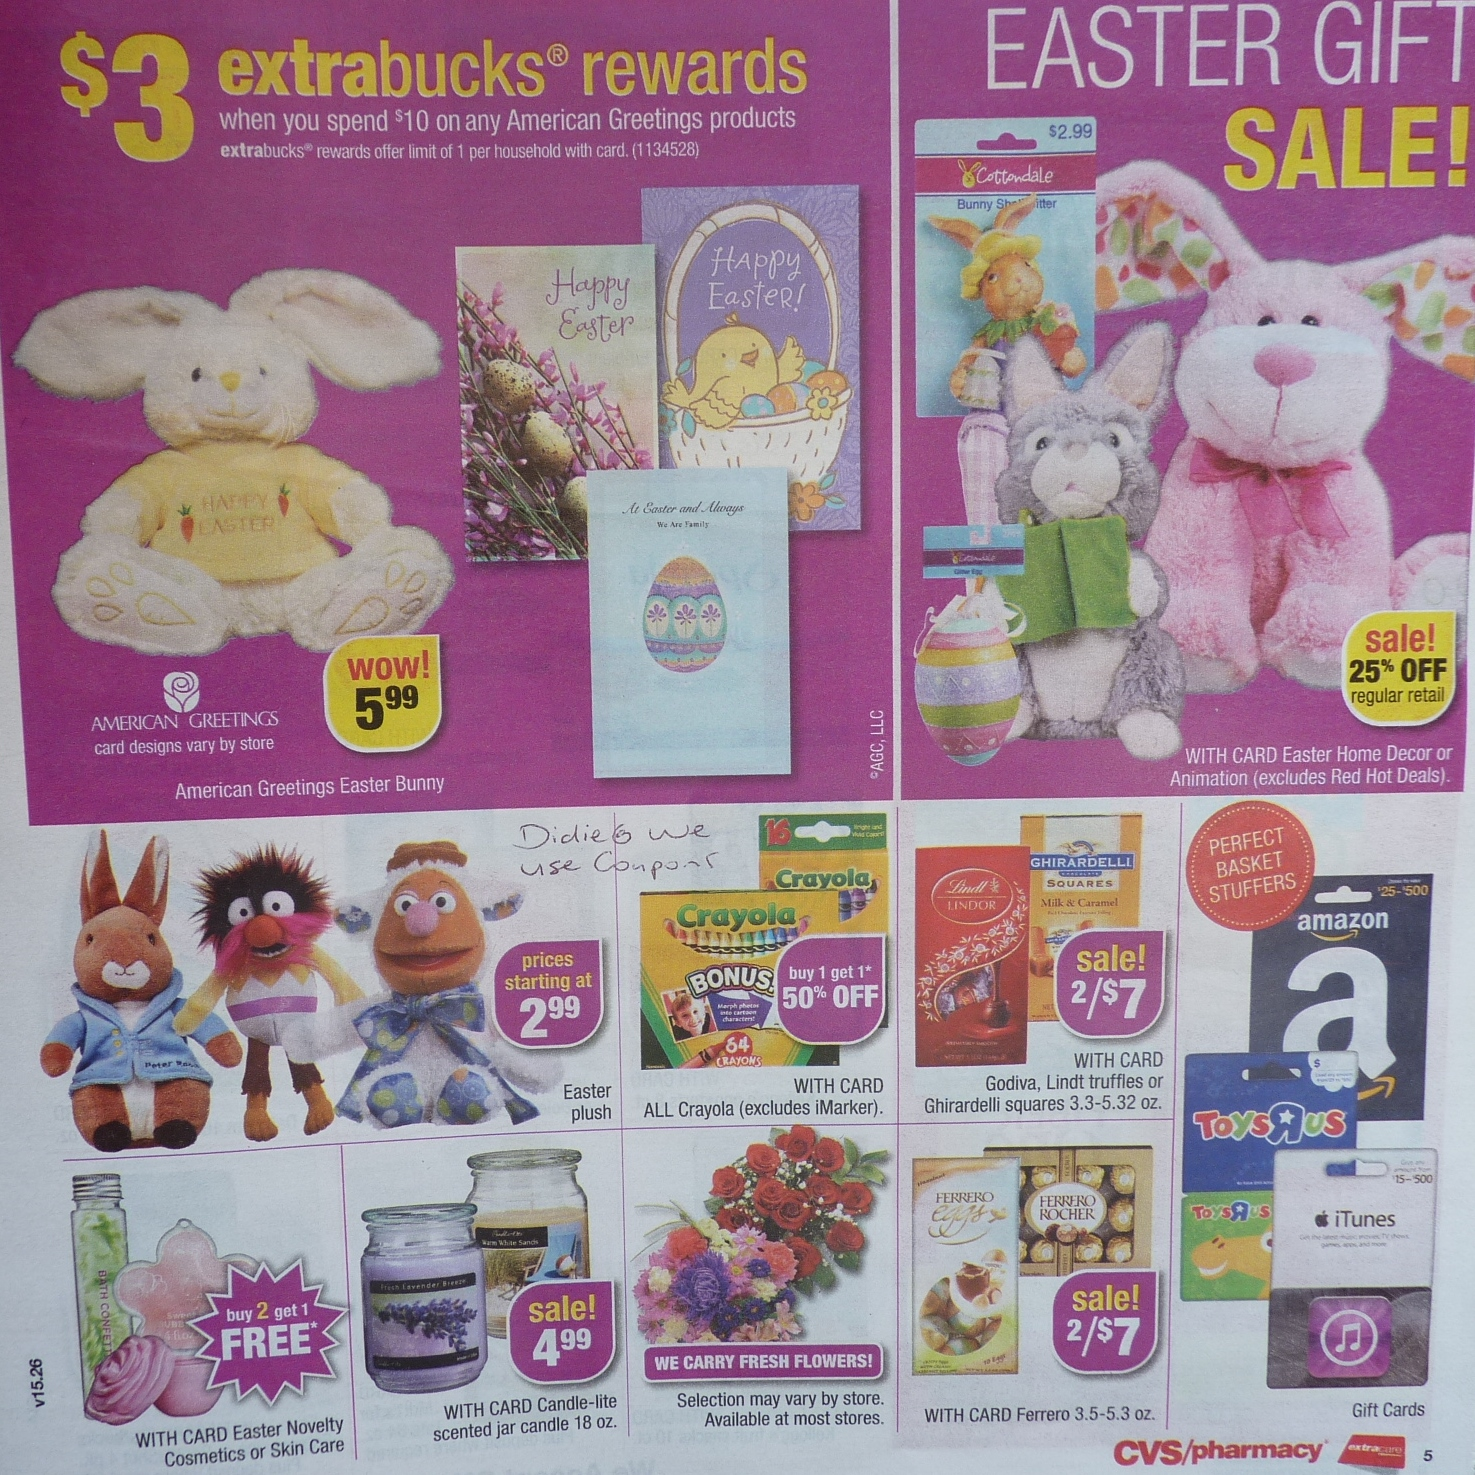 Simply cvs cvs ad scan preview for the week of march 24 2013 you can see if there are any printable coupons youd like to print for items on sale at redplum smartsource coupon network or coupons kristyandbryce Choice Image